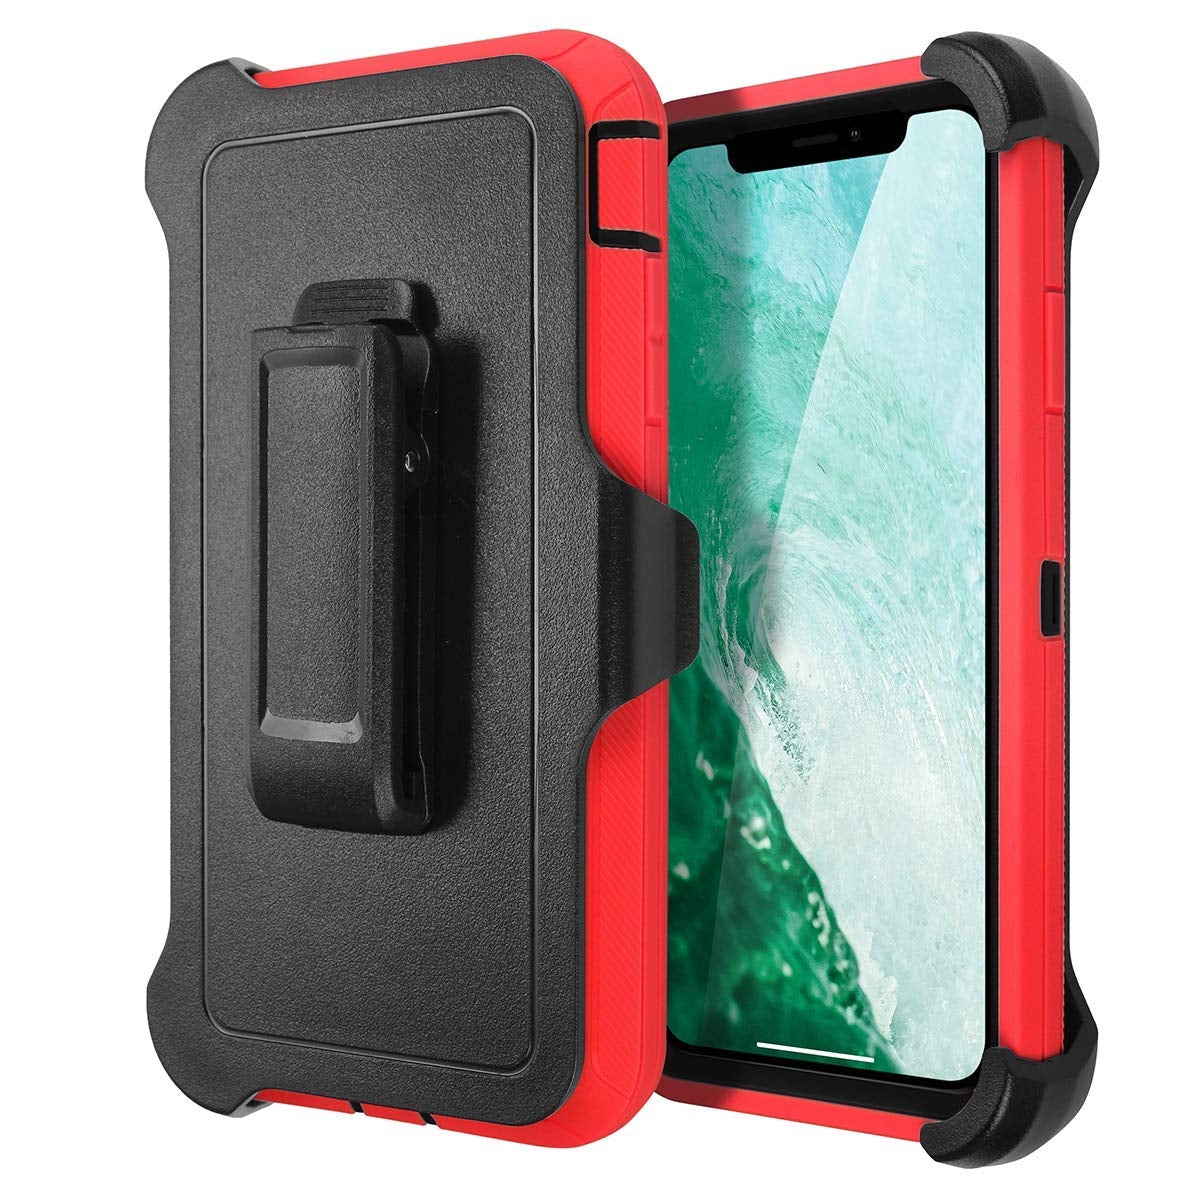 Belt Clip Shockproof 4 in 1 Rugged Shorkproof Dust Proof Cover+ Holster Belt Clip Kickstand for Apple iPhone